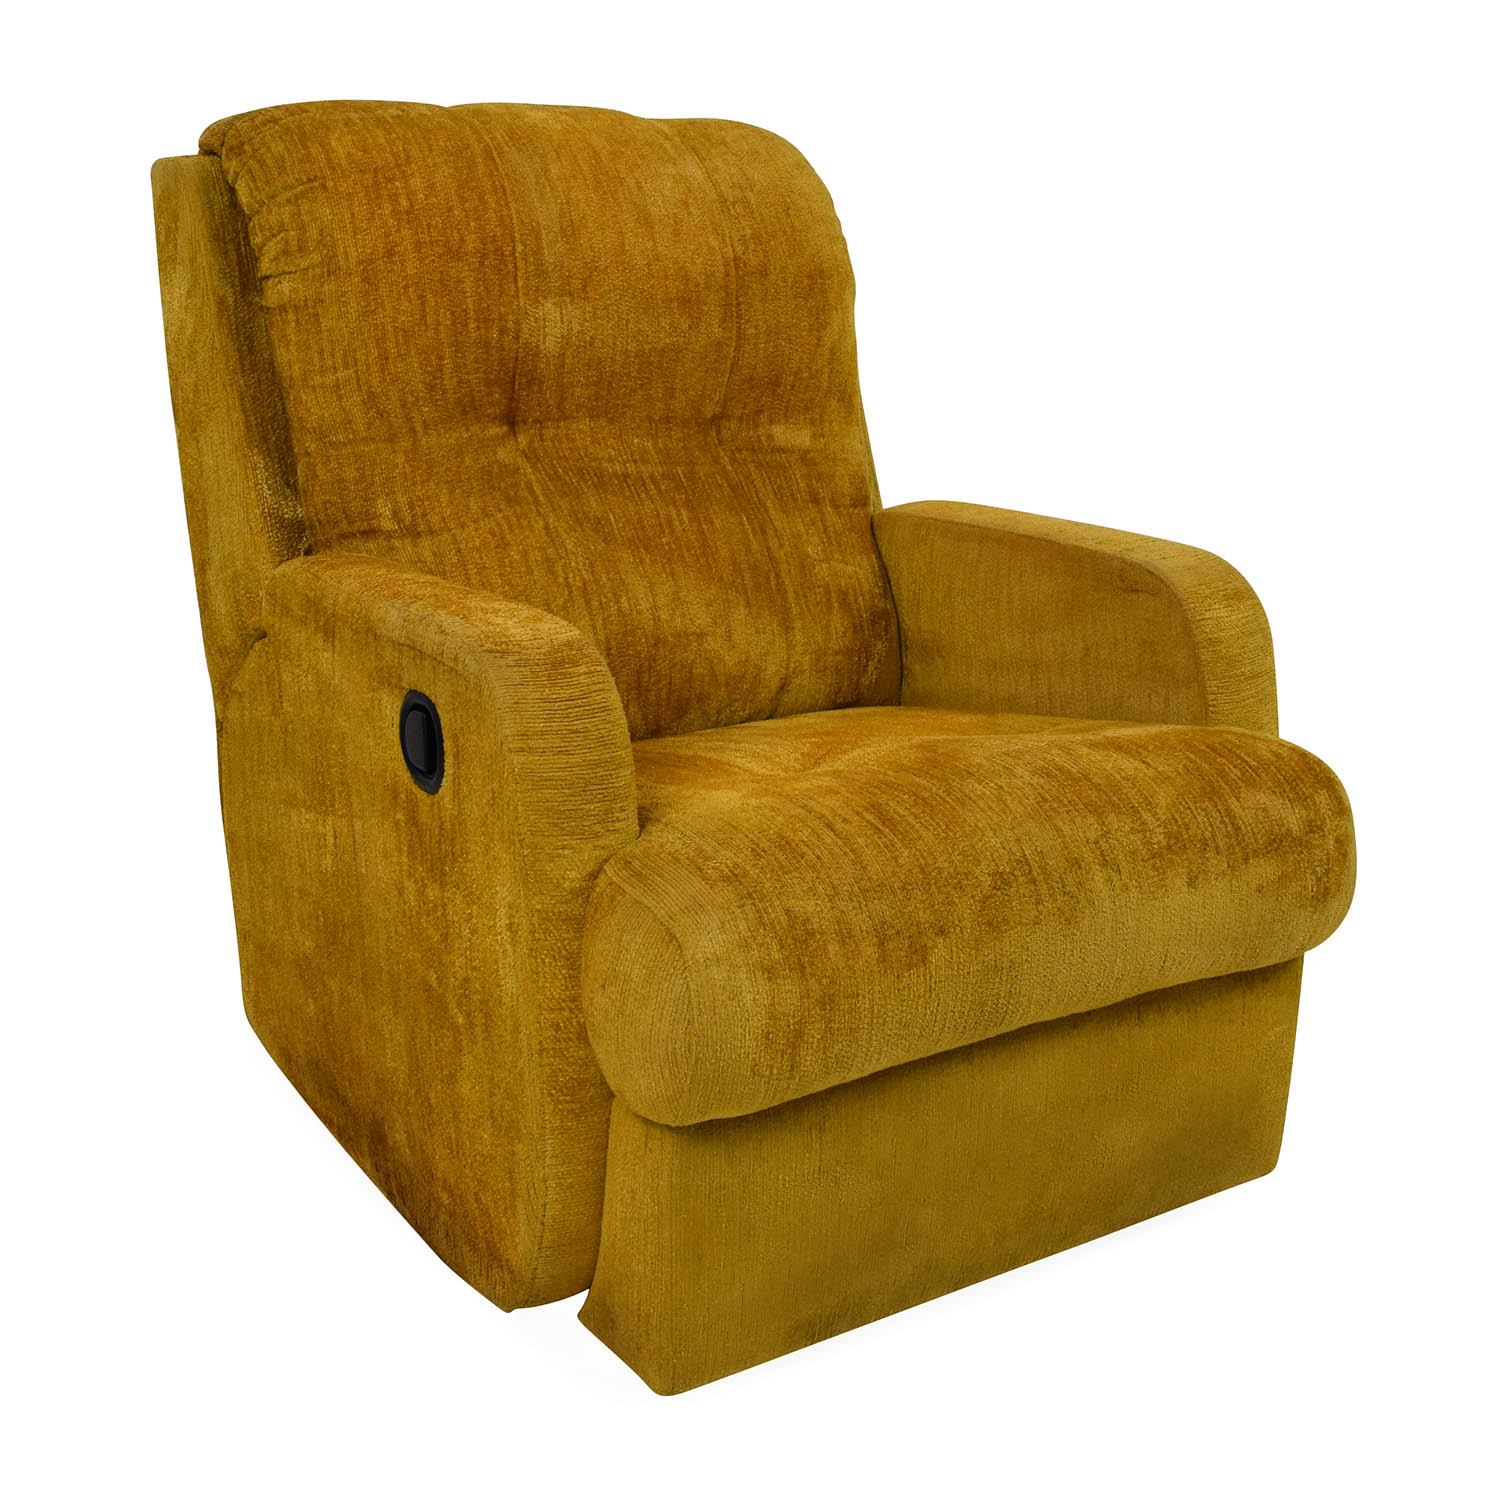 75% OFF Unknown Brand Yellow Recliner Chair Chairs